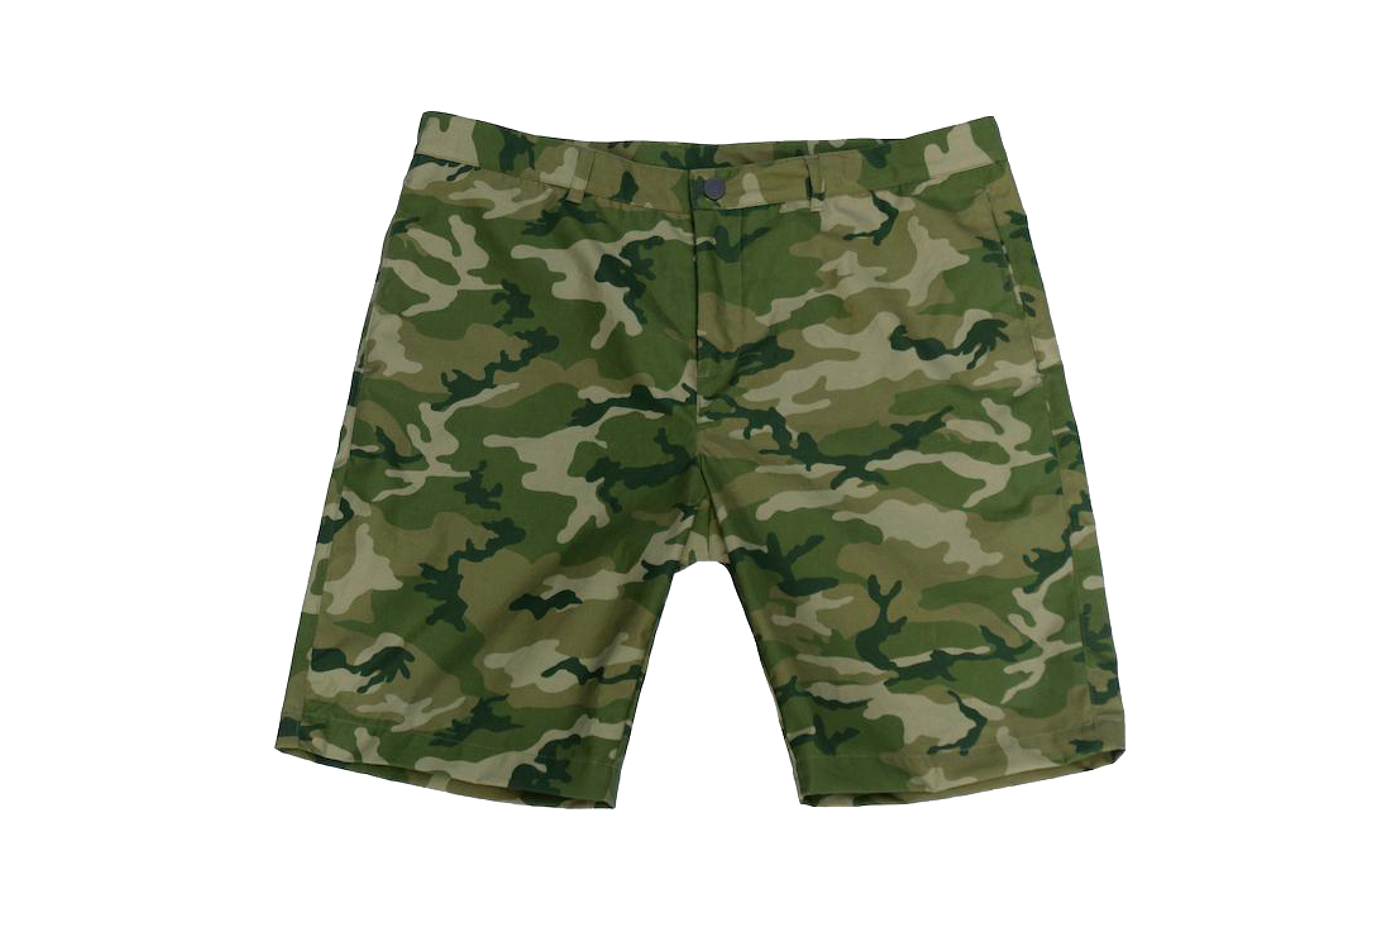 Search and State Re-Issues the Camo Field Shorts